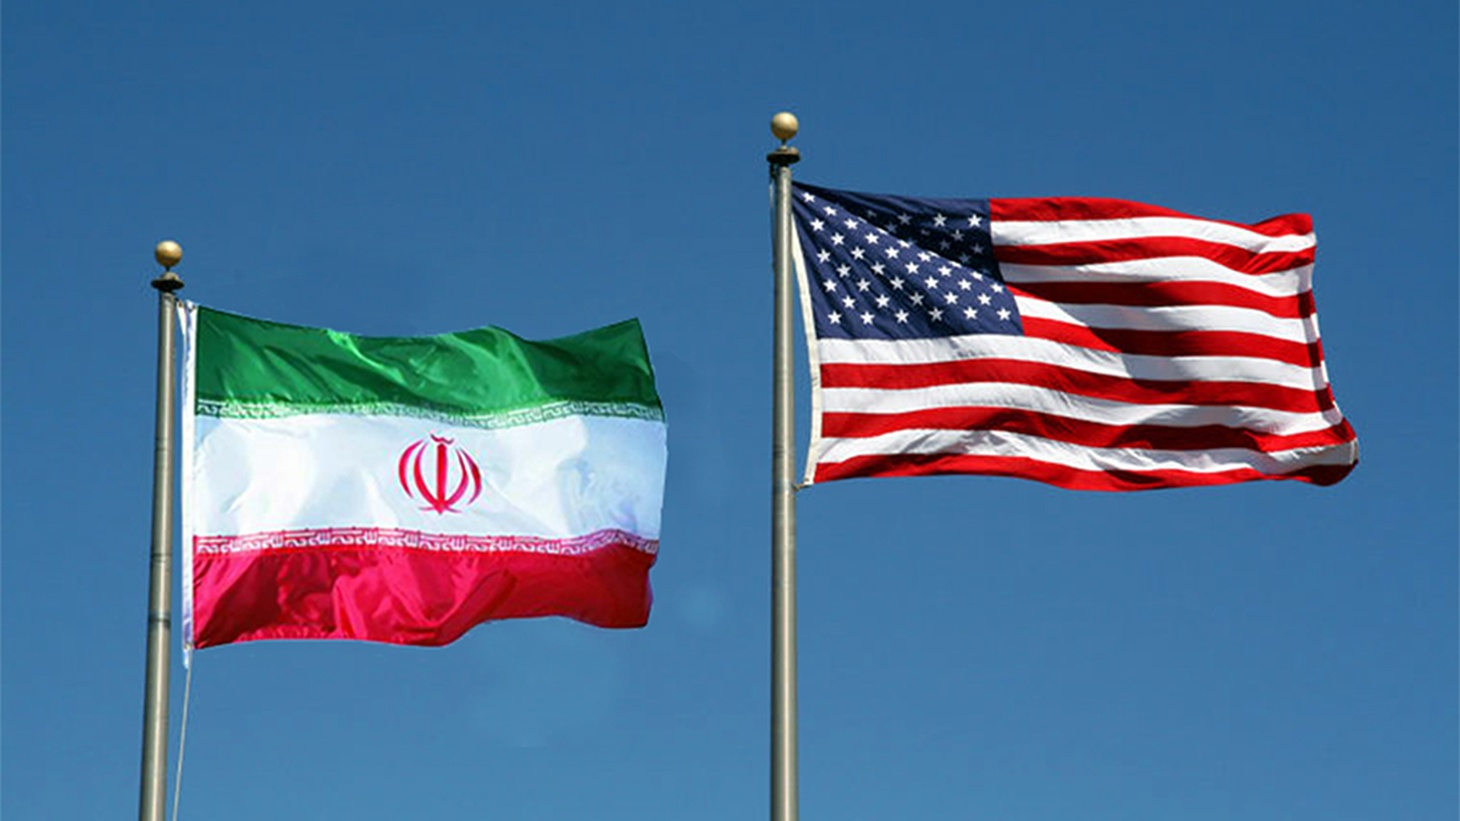 Iranian and US flags.